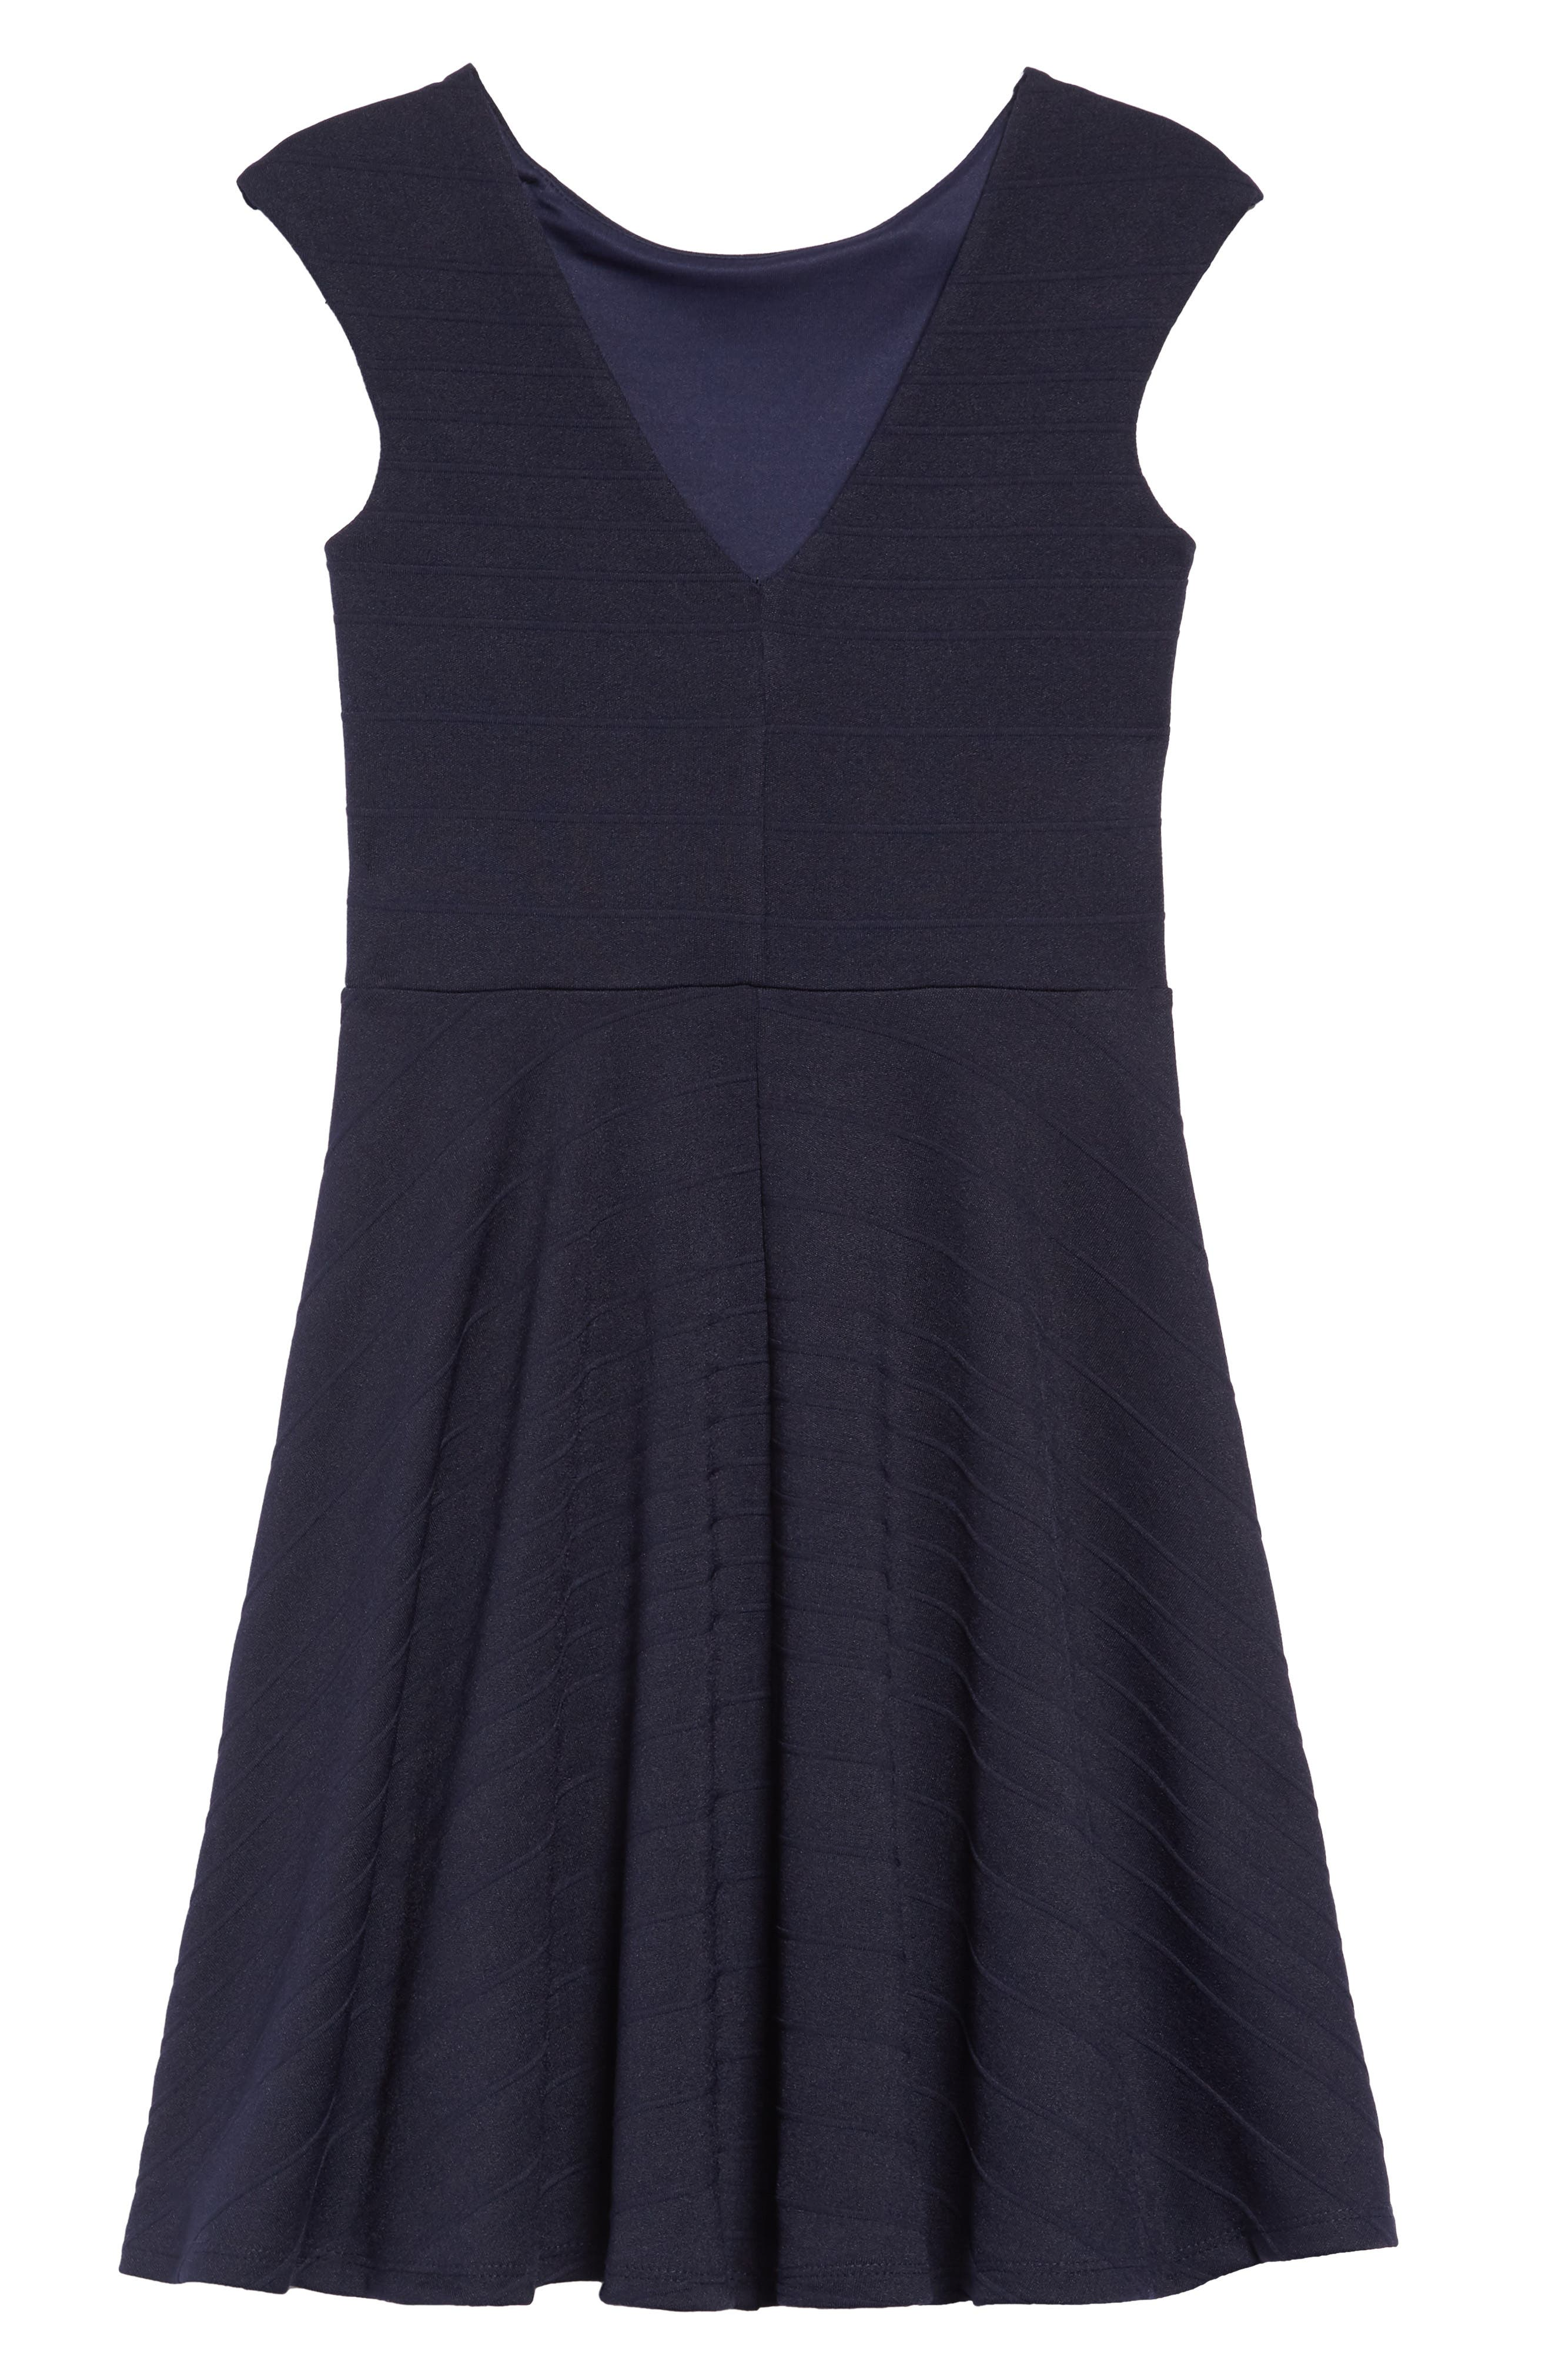 UN DEUX TROIS, Stripe Fit & Flare Dress, Alternate thumbnail 2, color, NAVY